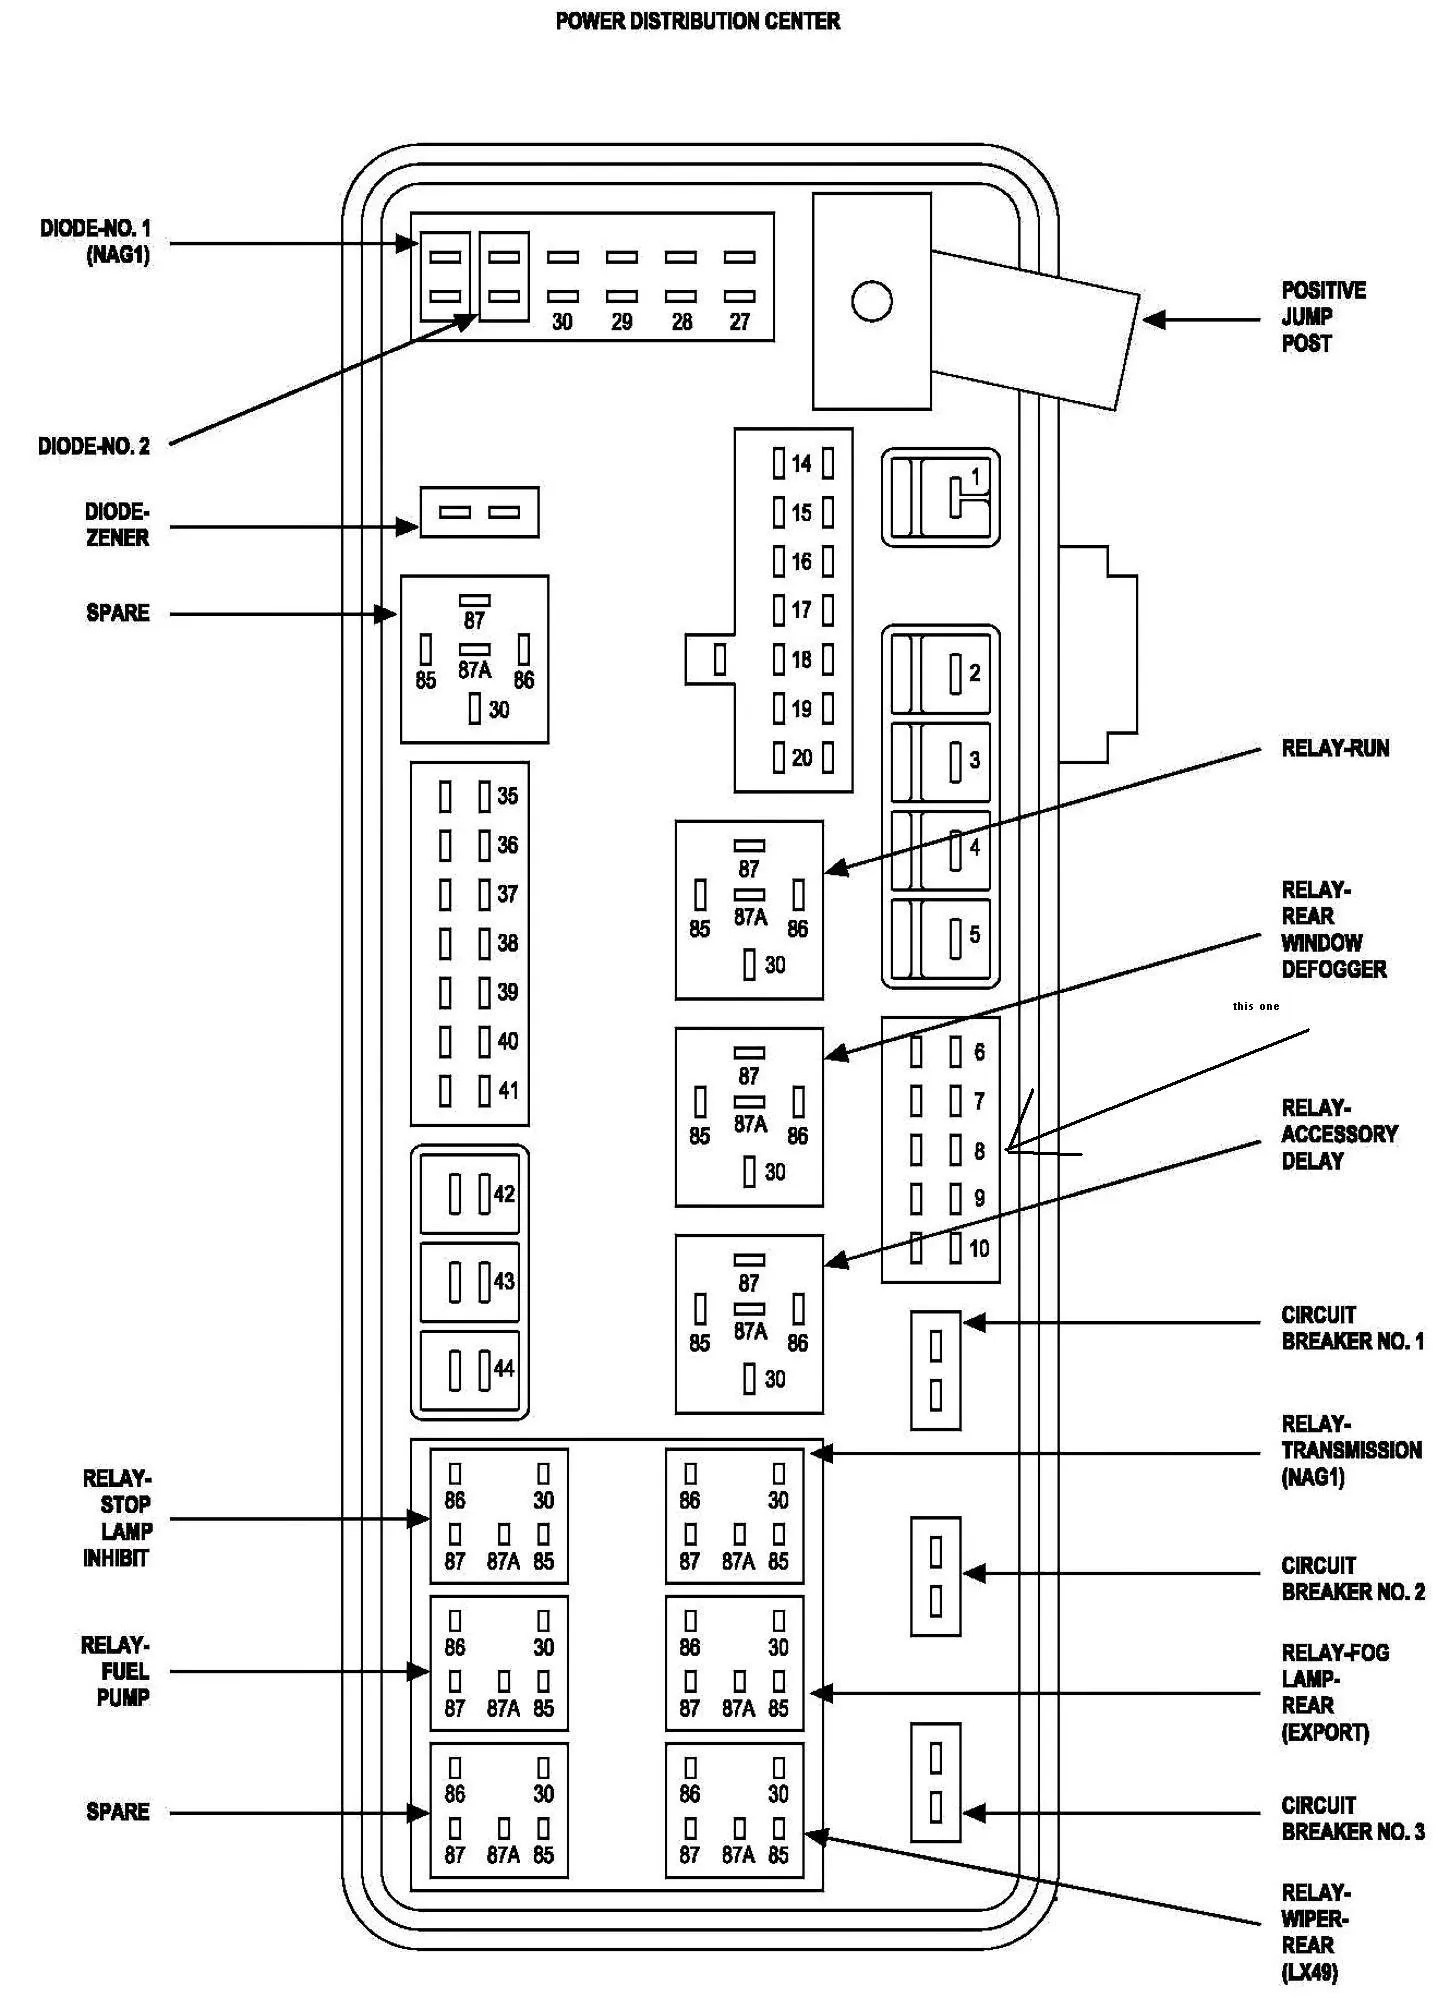 hight resolution of 02 durango fuse box wiring diagram 2003 dodge durango fuse box diagram wiring diagram database mix